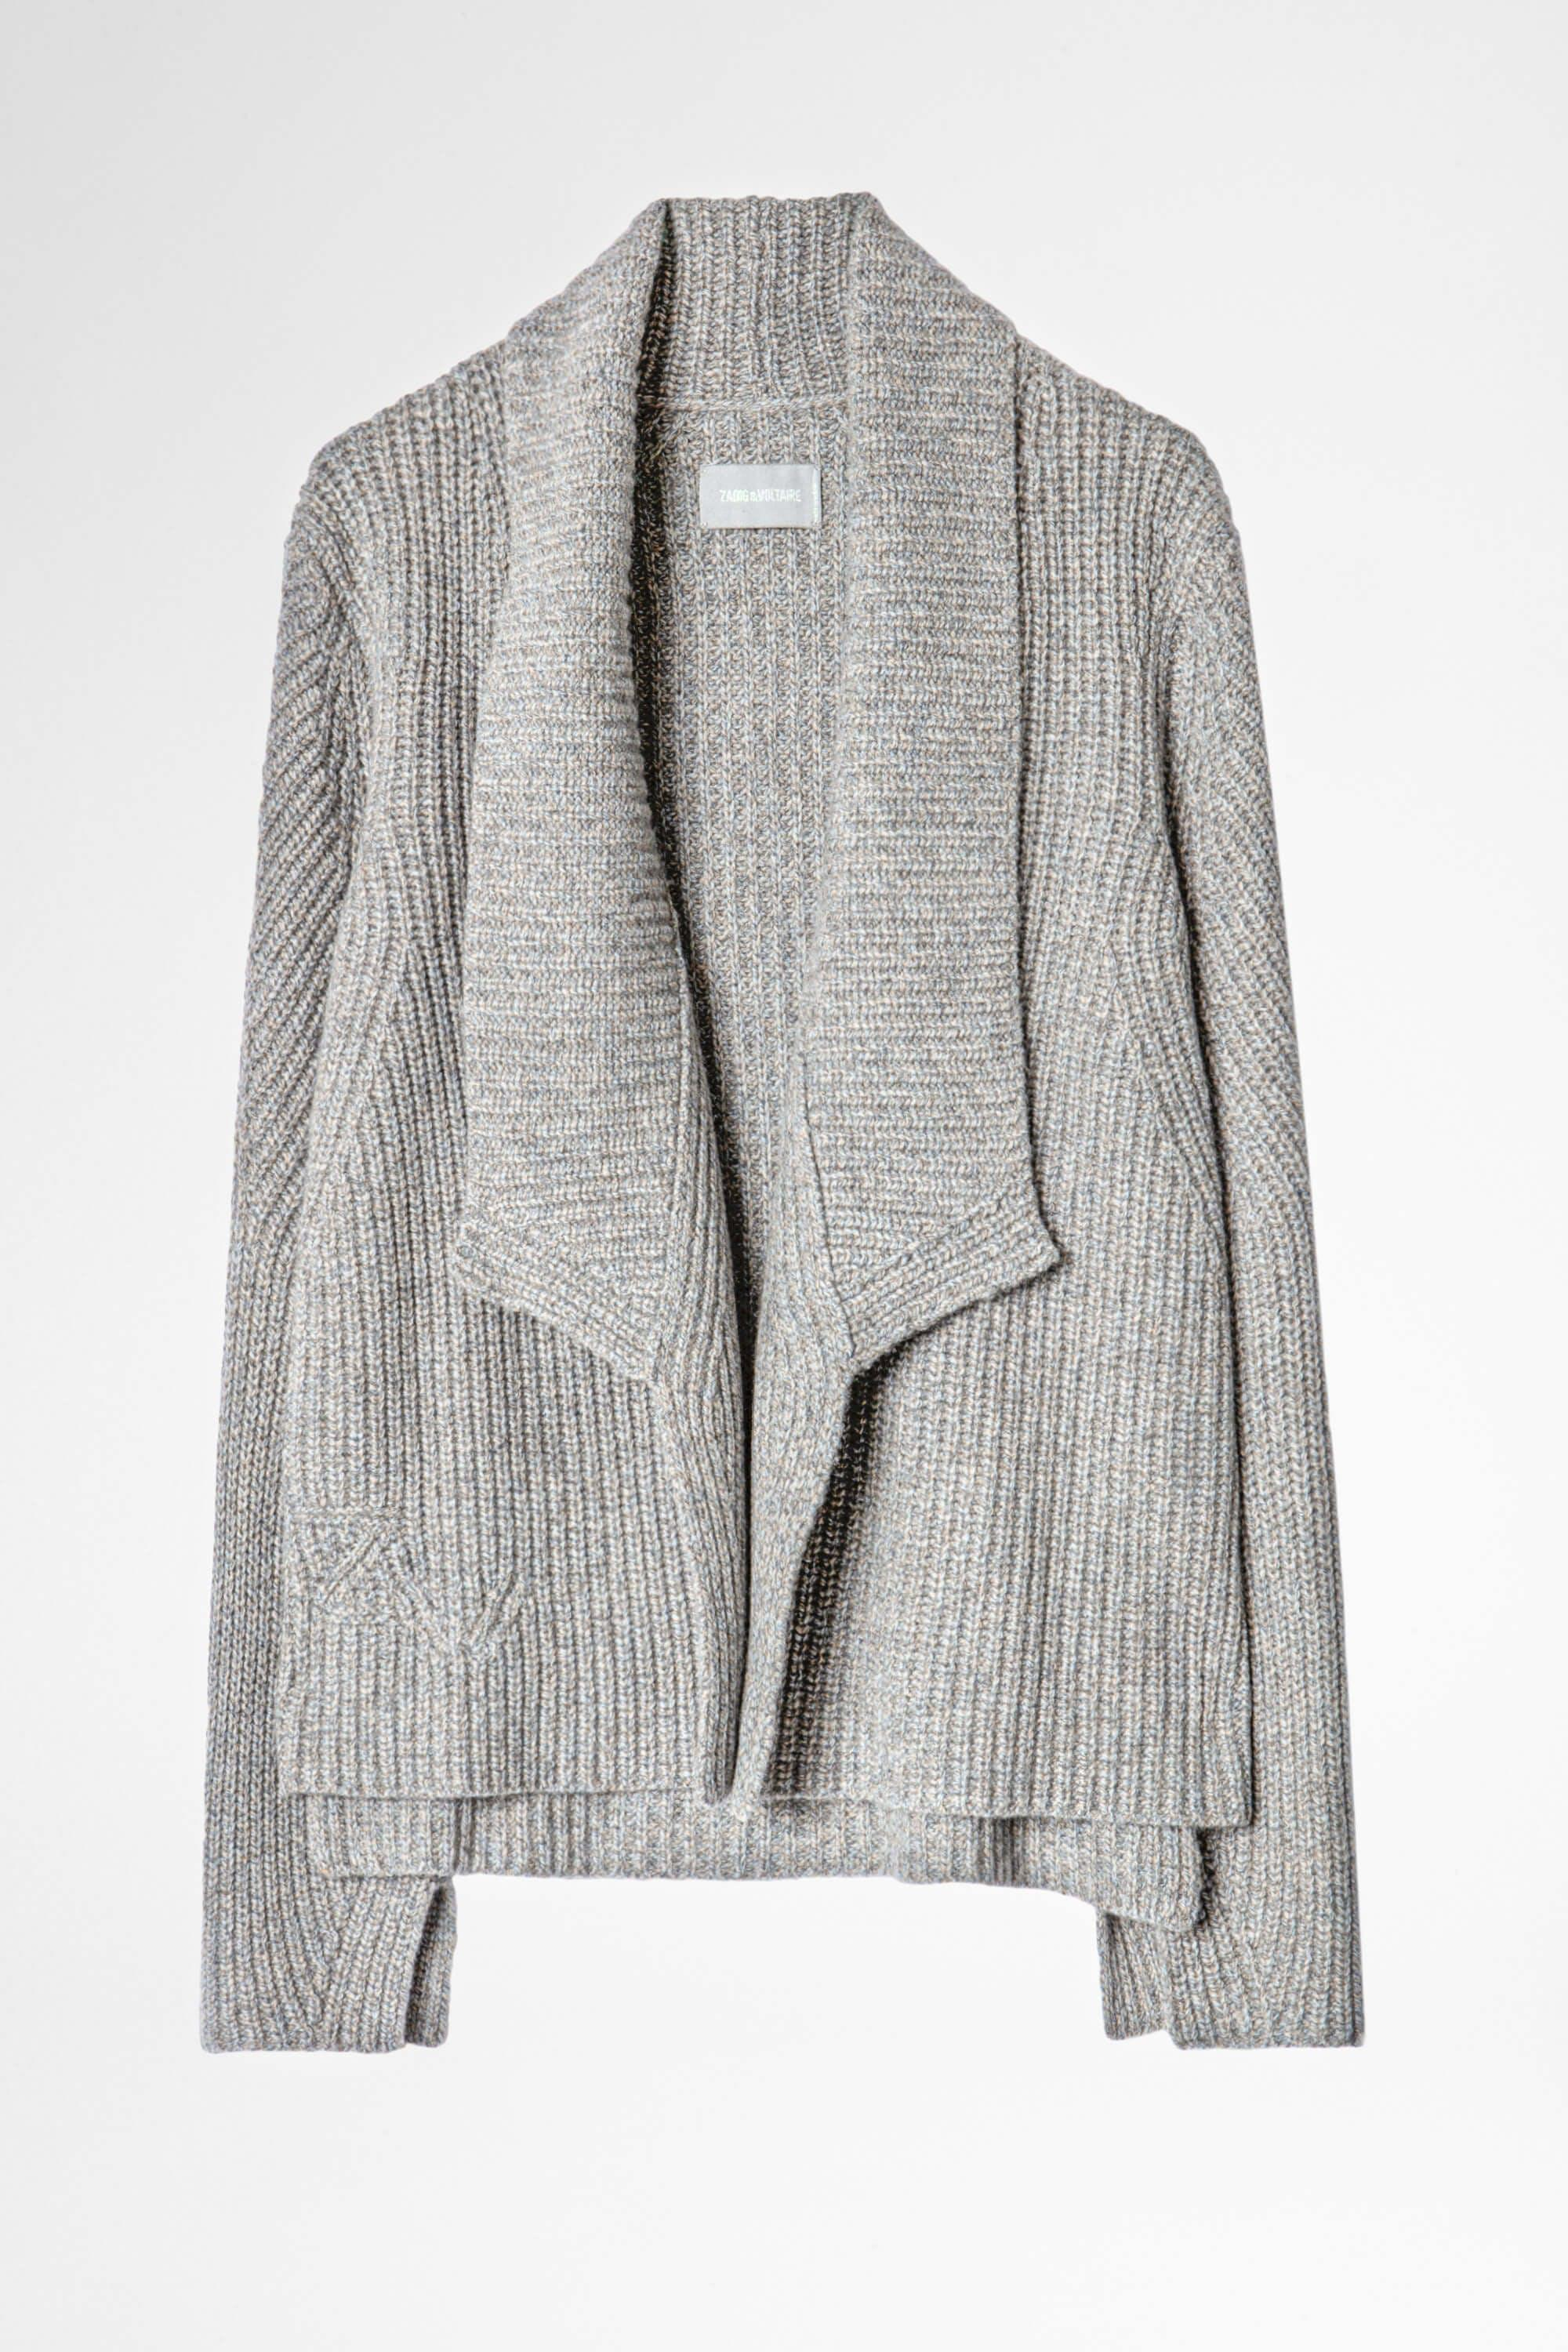 Dilly Recycled Cardigan 5